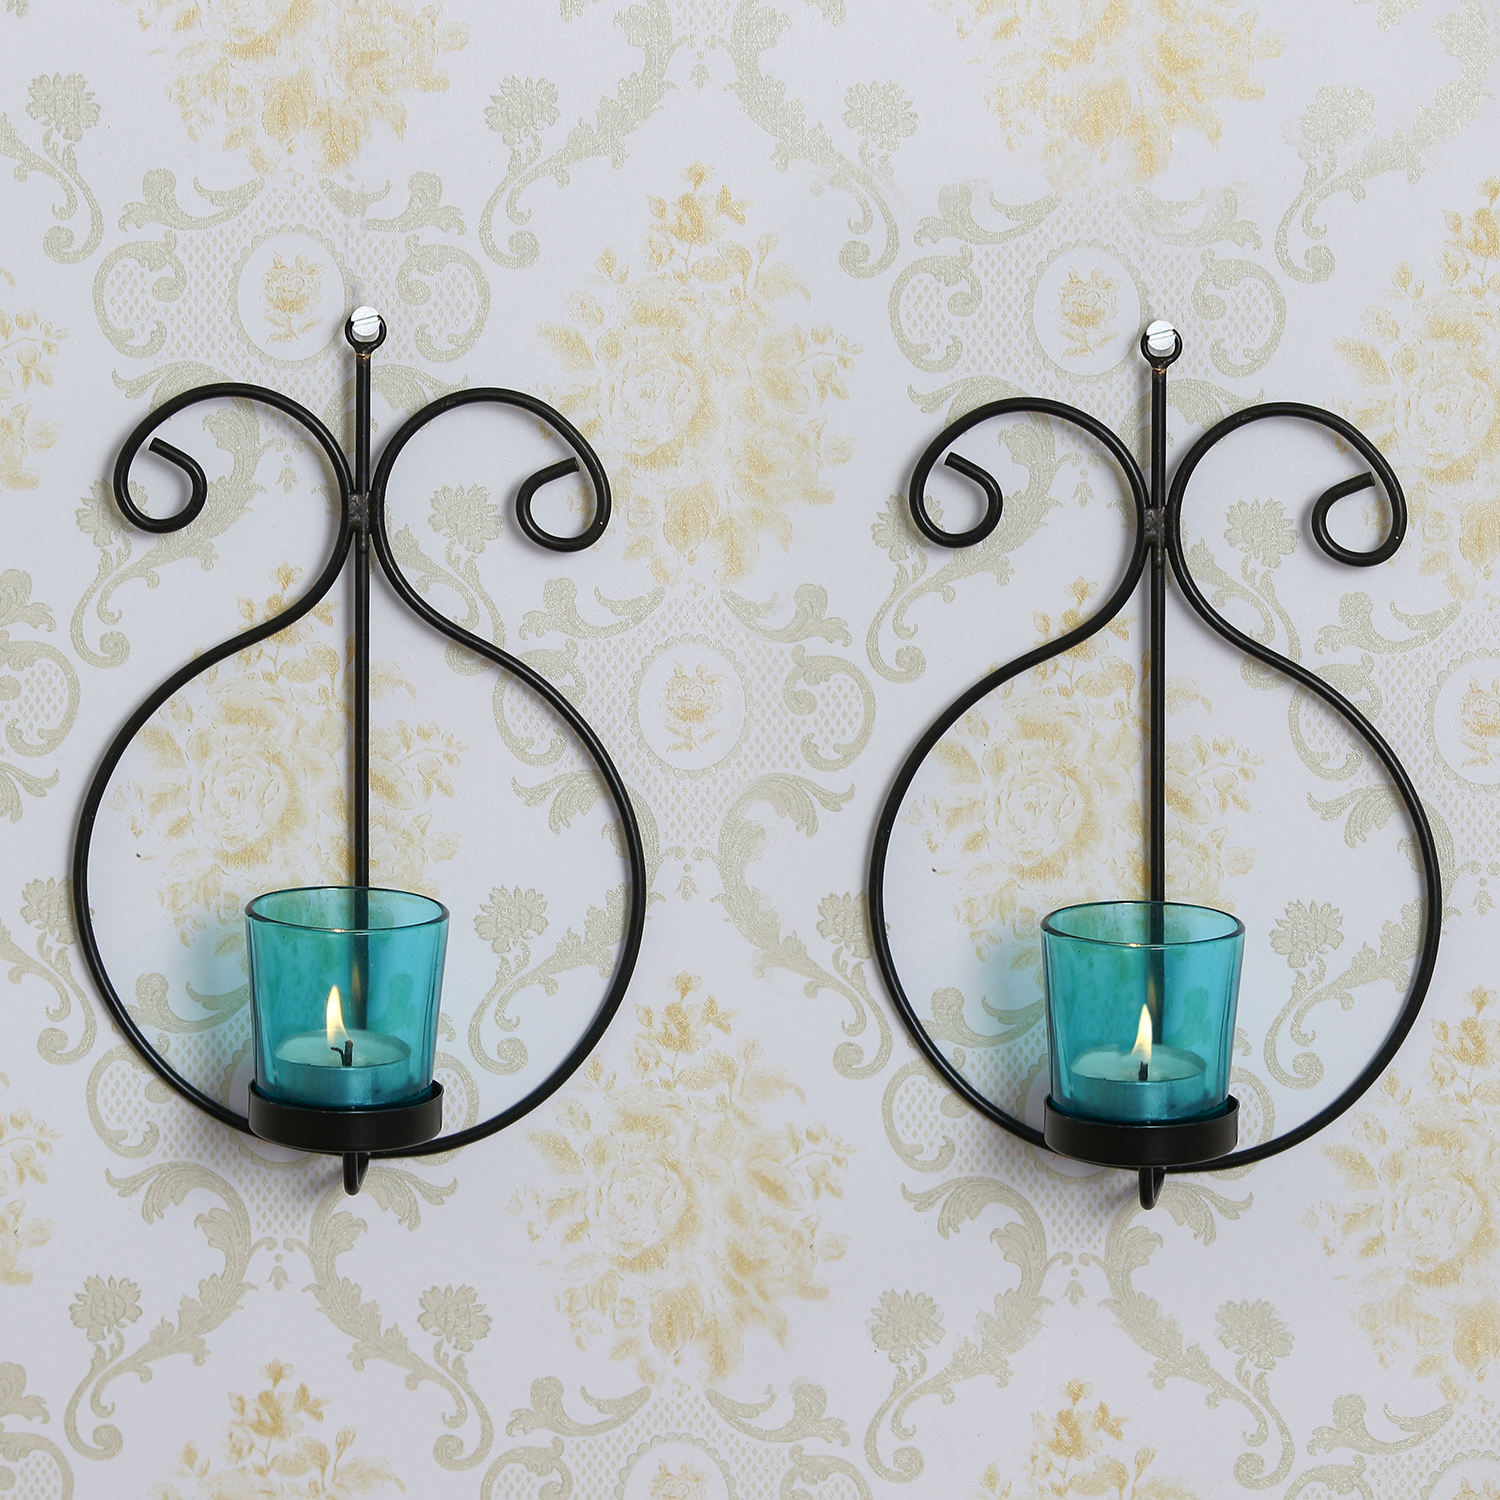 2 Blue Glass Cup Black Tea Light Candle Holder with Wall Sconce Indian Home Decor